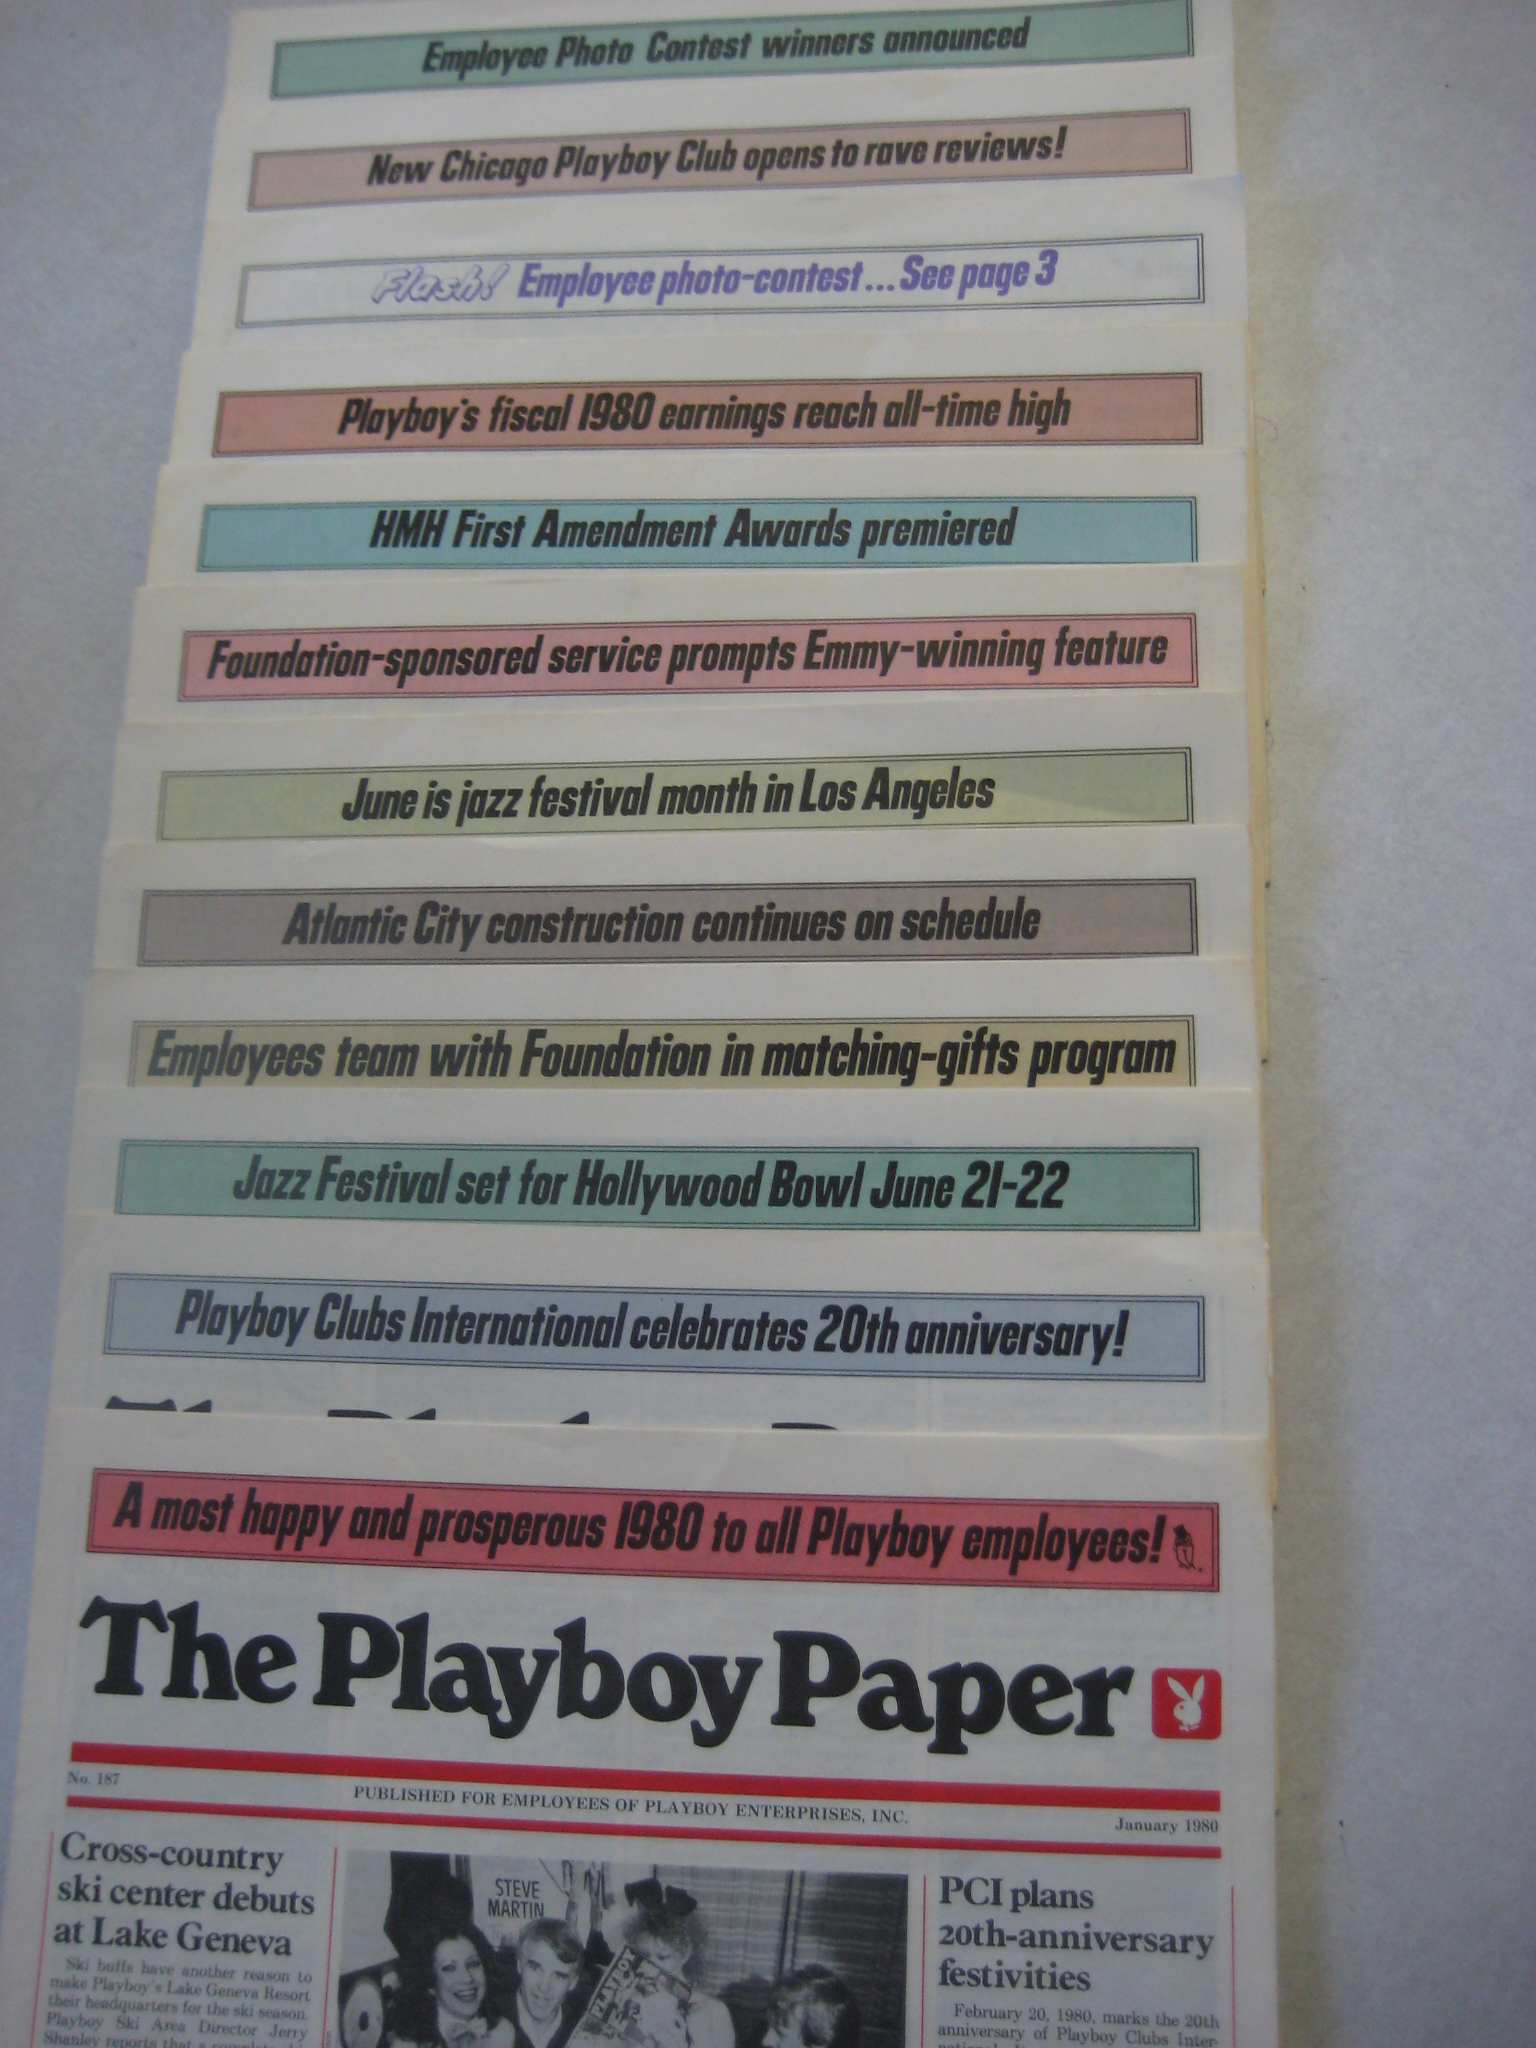 The Playboy Paper full year 1980